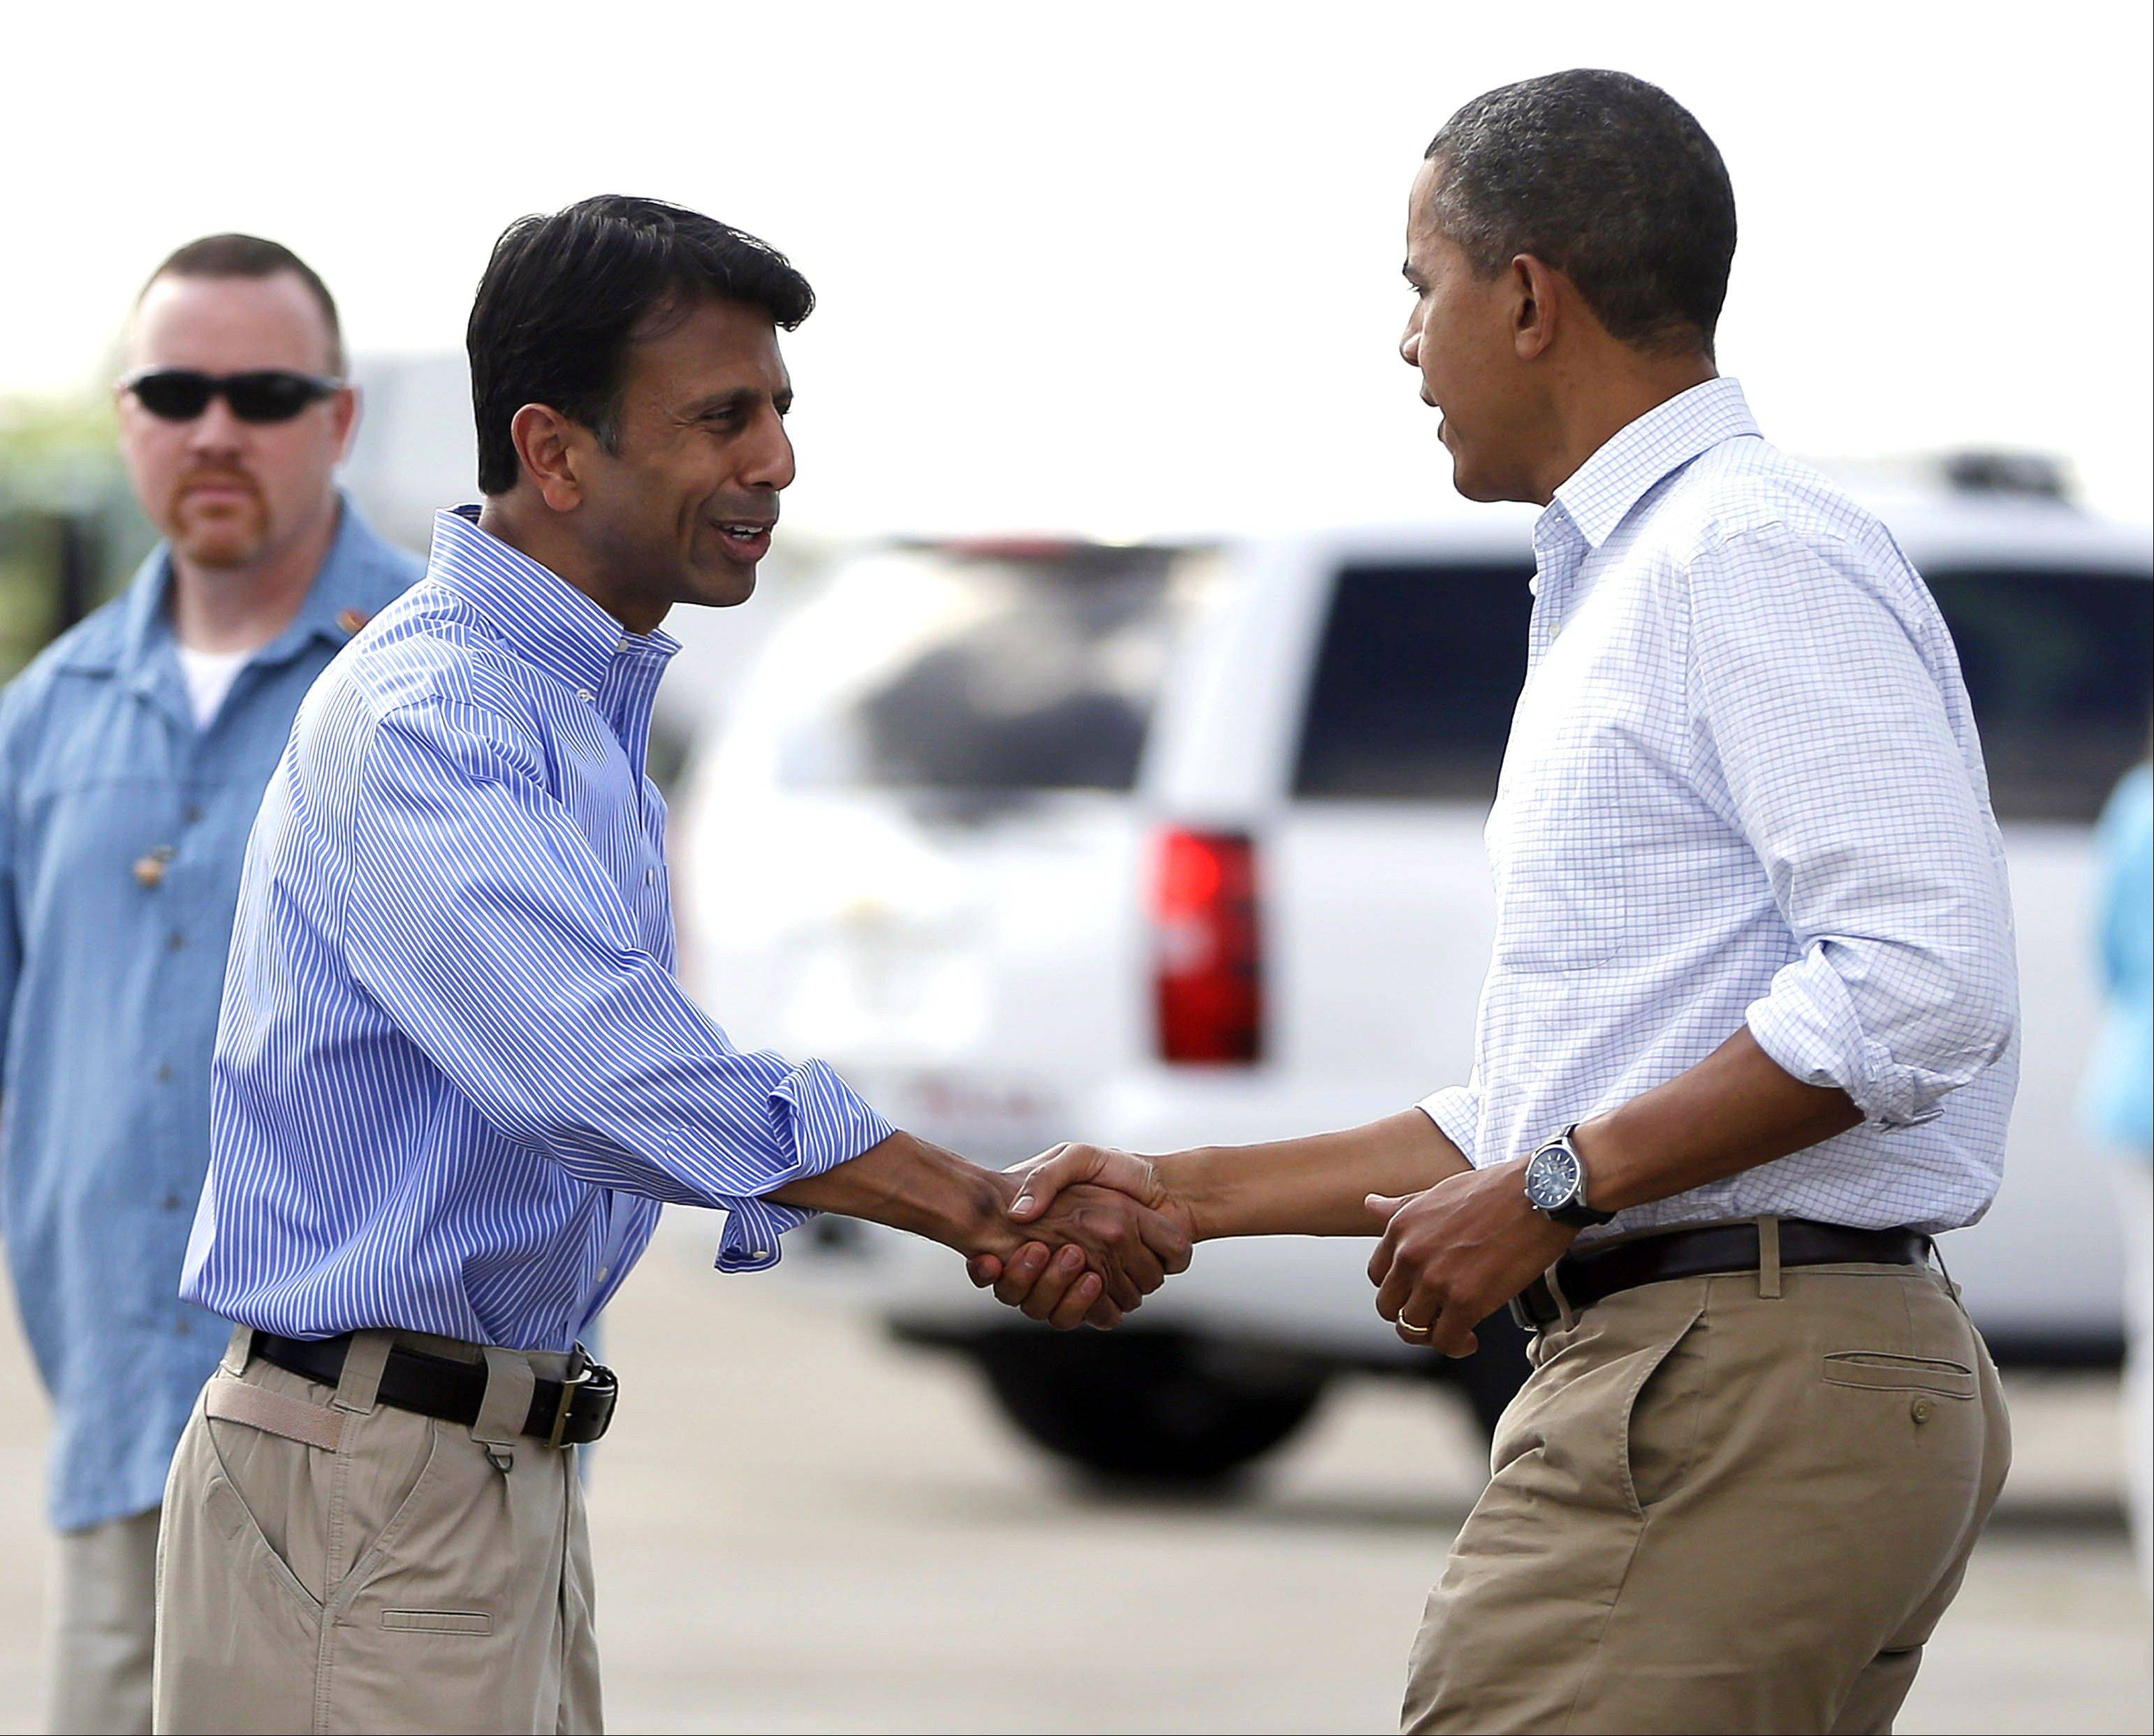 President Barack Obama is greeted on the tarmac by Gov. Bobby Jindal, during his arrival in New Orleans Monday. Obama traveled to the region to view the ongoing response and recovery efforts to Hurricane Isaac.